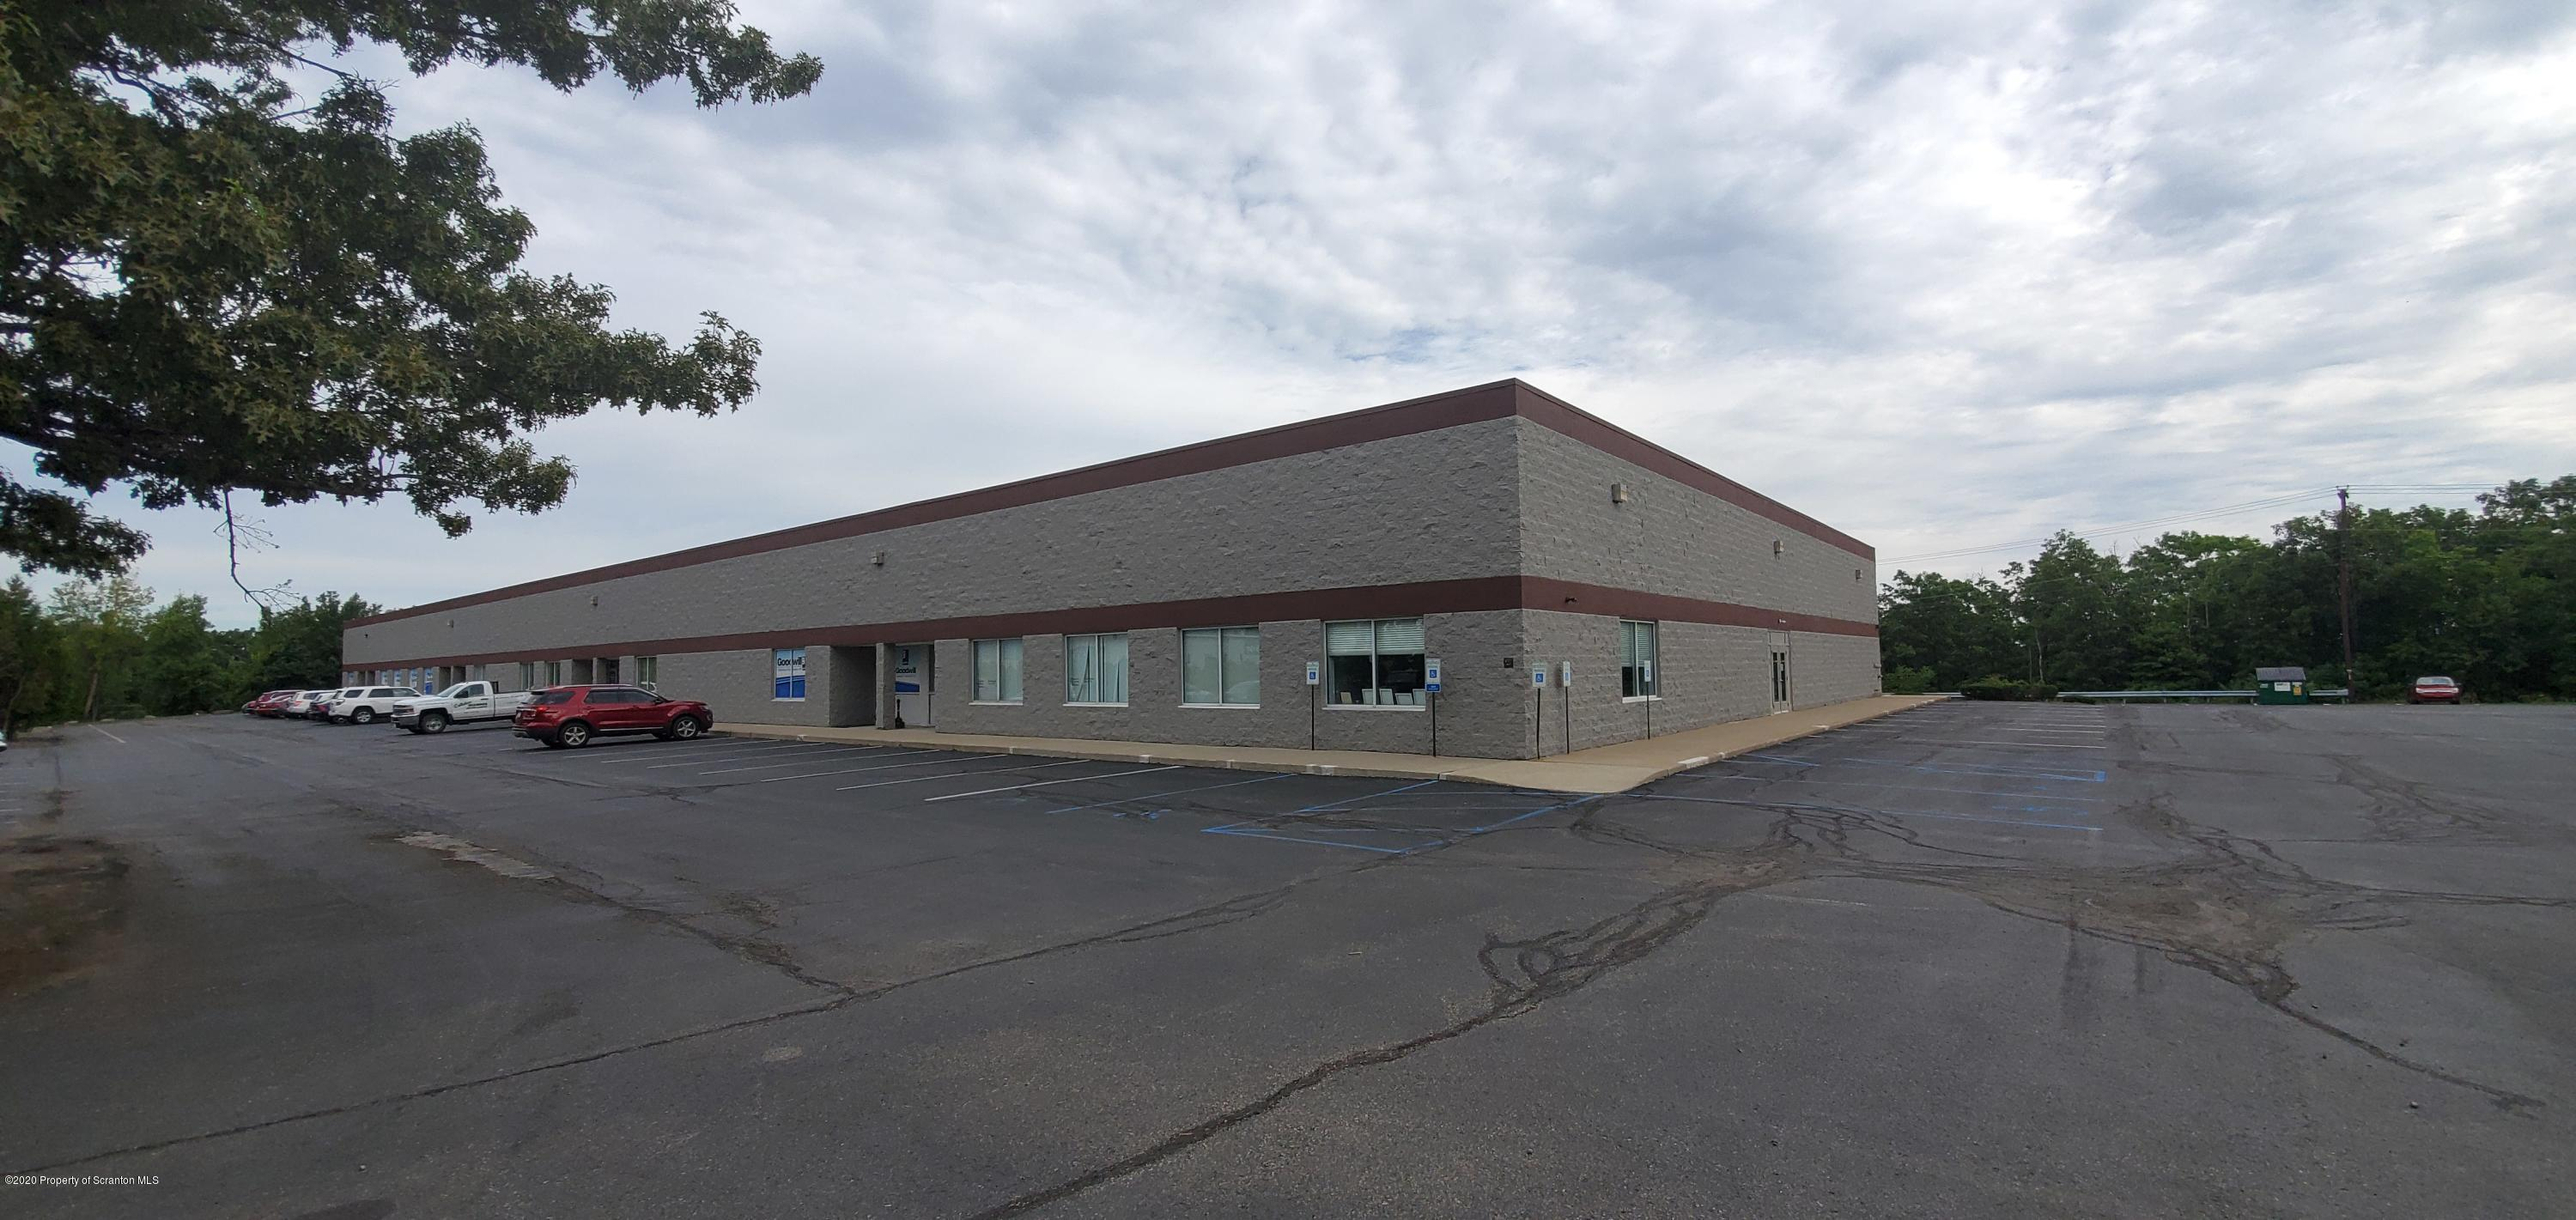 769 Keystone Industrial Park Rd, Throop, Pennsylvania 18512, ,2 BathroomsBathrooms,Commercial,For Lease,Keystone Industrial Park,20-4352